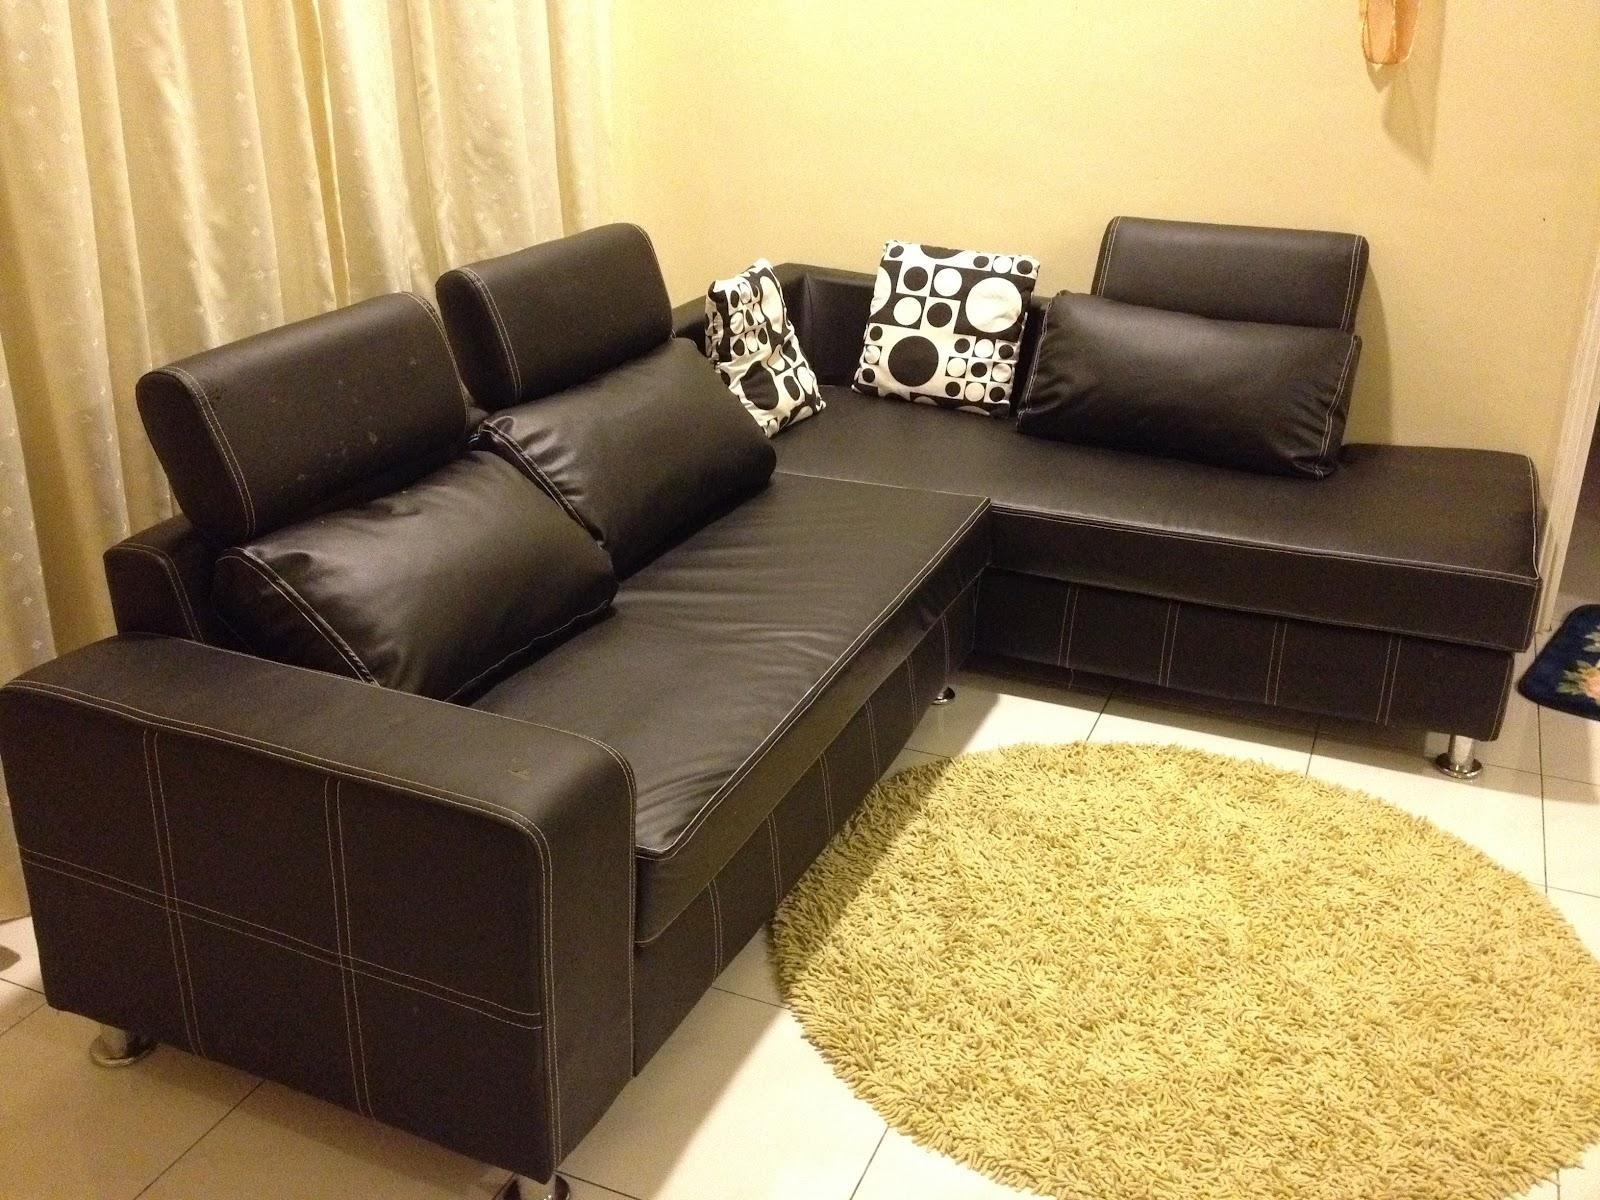 Sectional Sofas For Sale Used | Tehranmix Decoration Pertaining To Used Sectionals (Image 9 of 20)